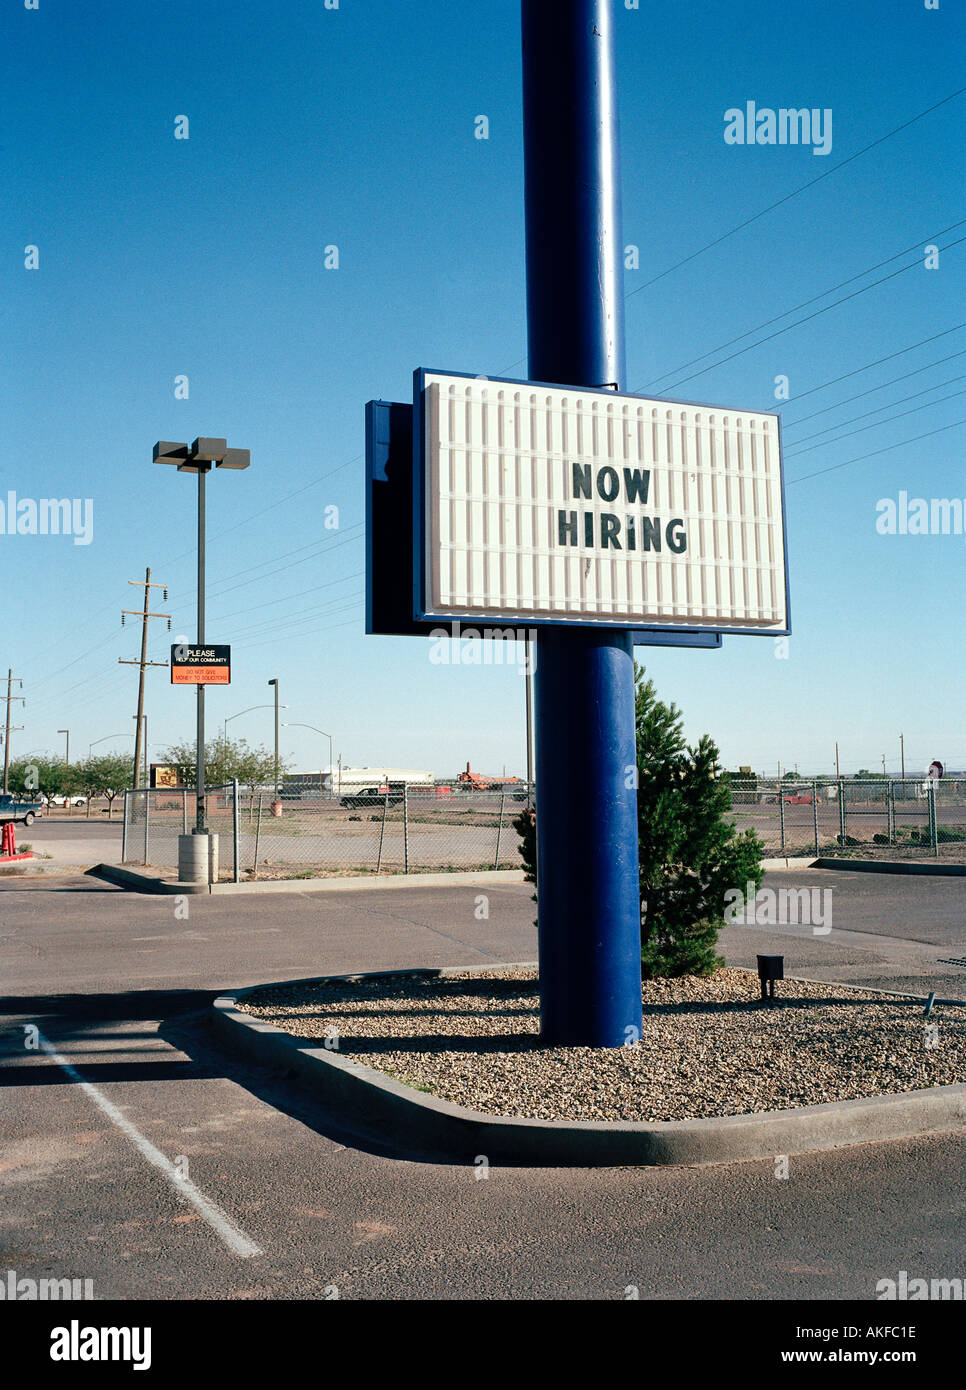 Now Hiring Arizona USA - Stock Image